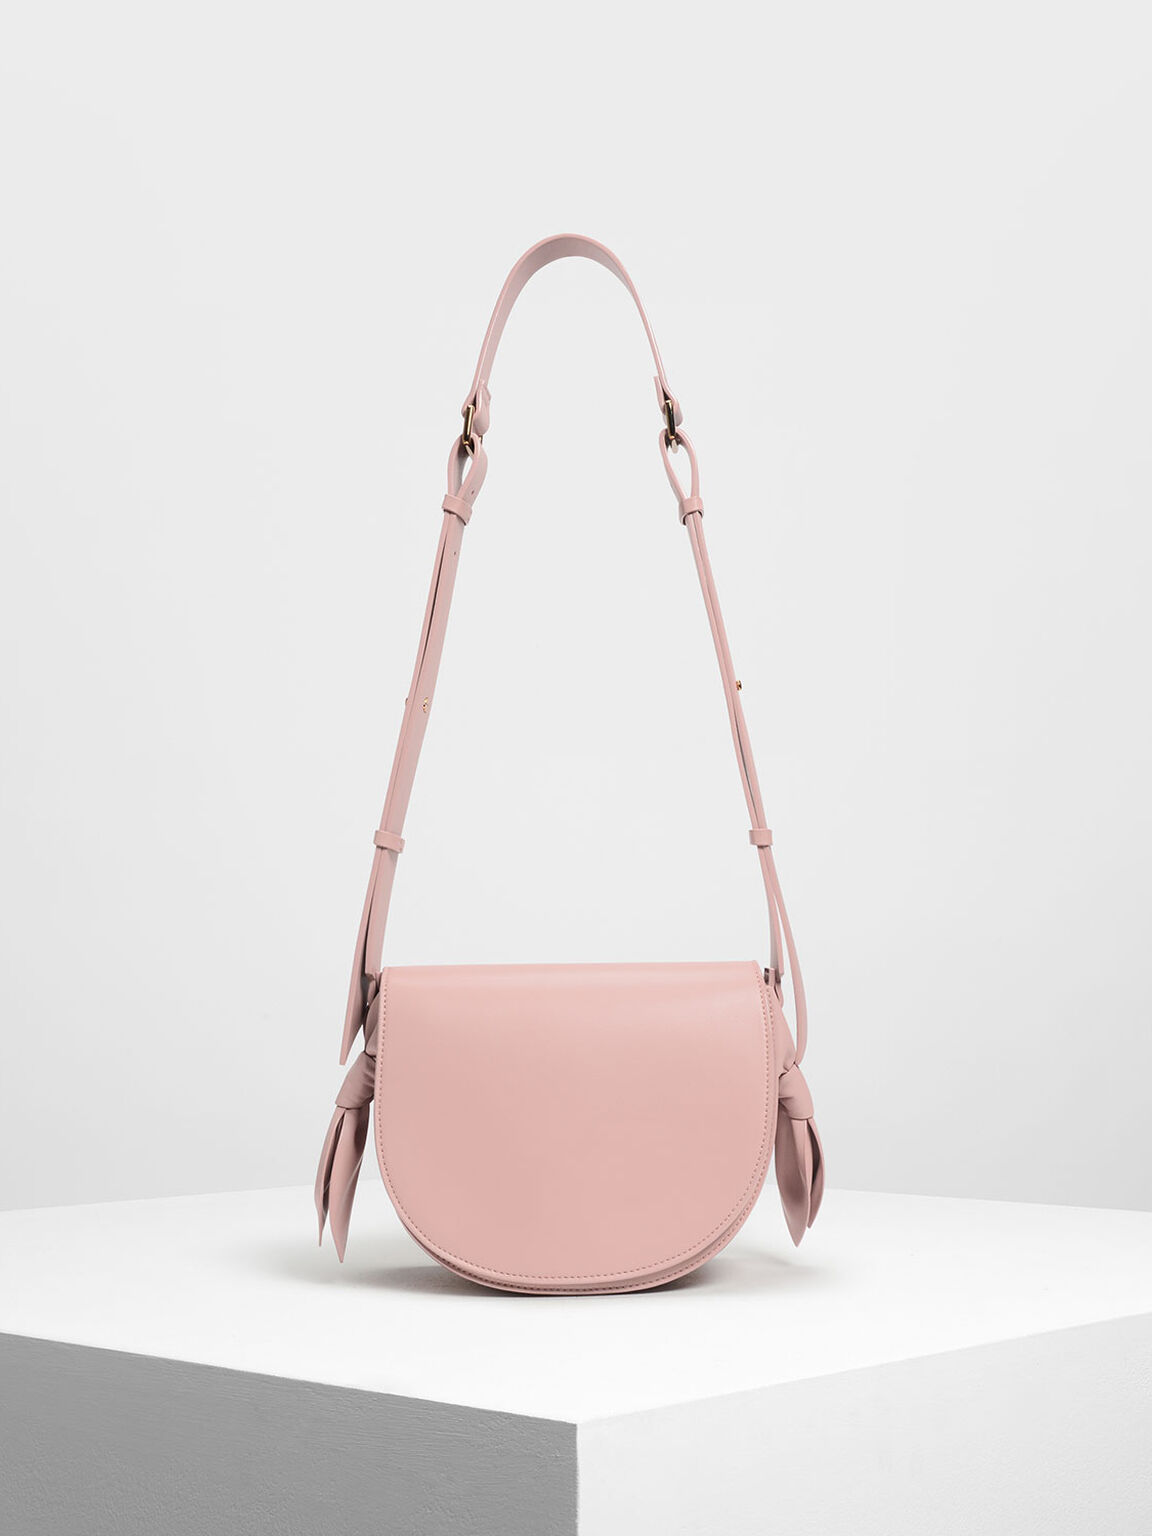 Knot Details Saddle Bag, Blush, hi-res